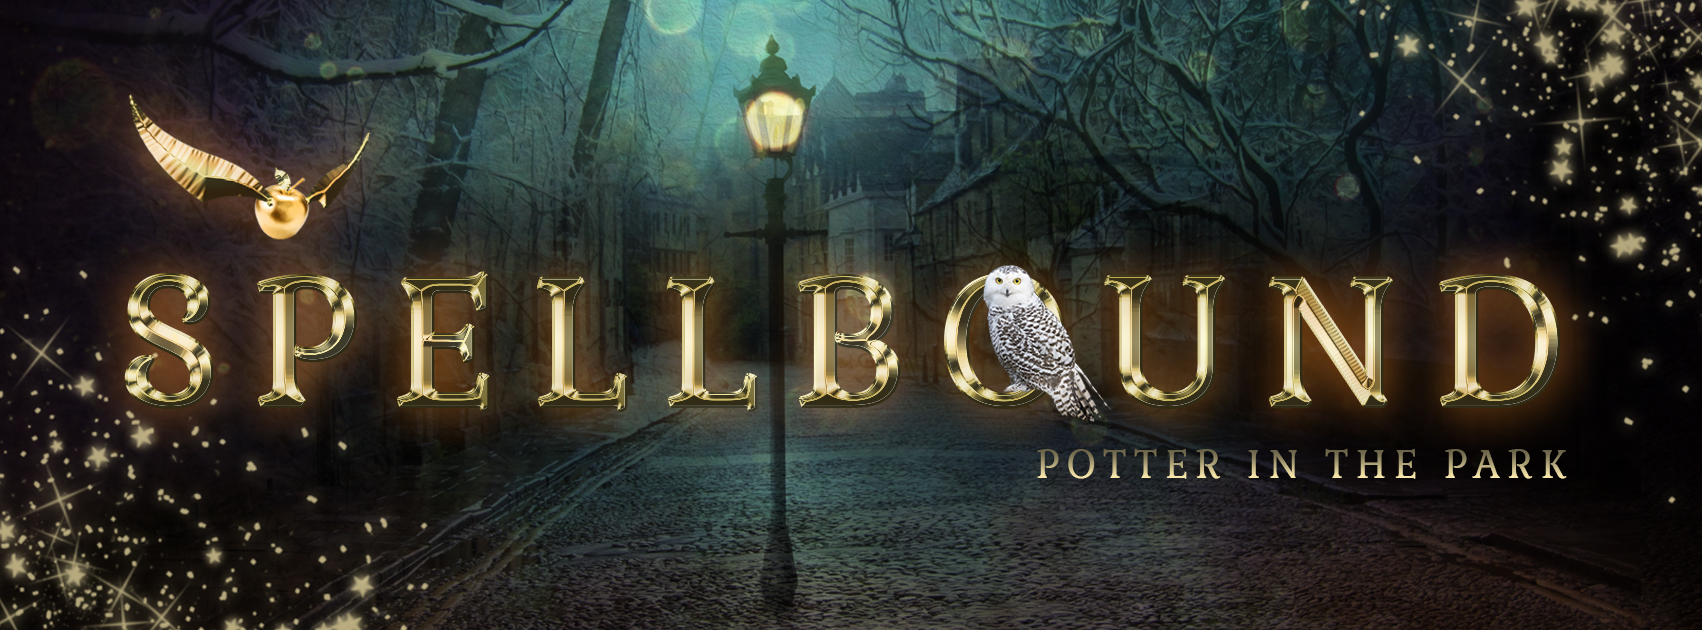 SPELLBOUND-FB Cover v2.jpg